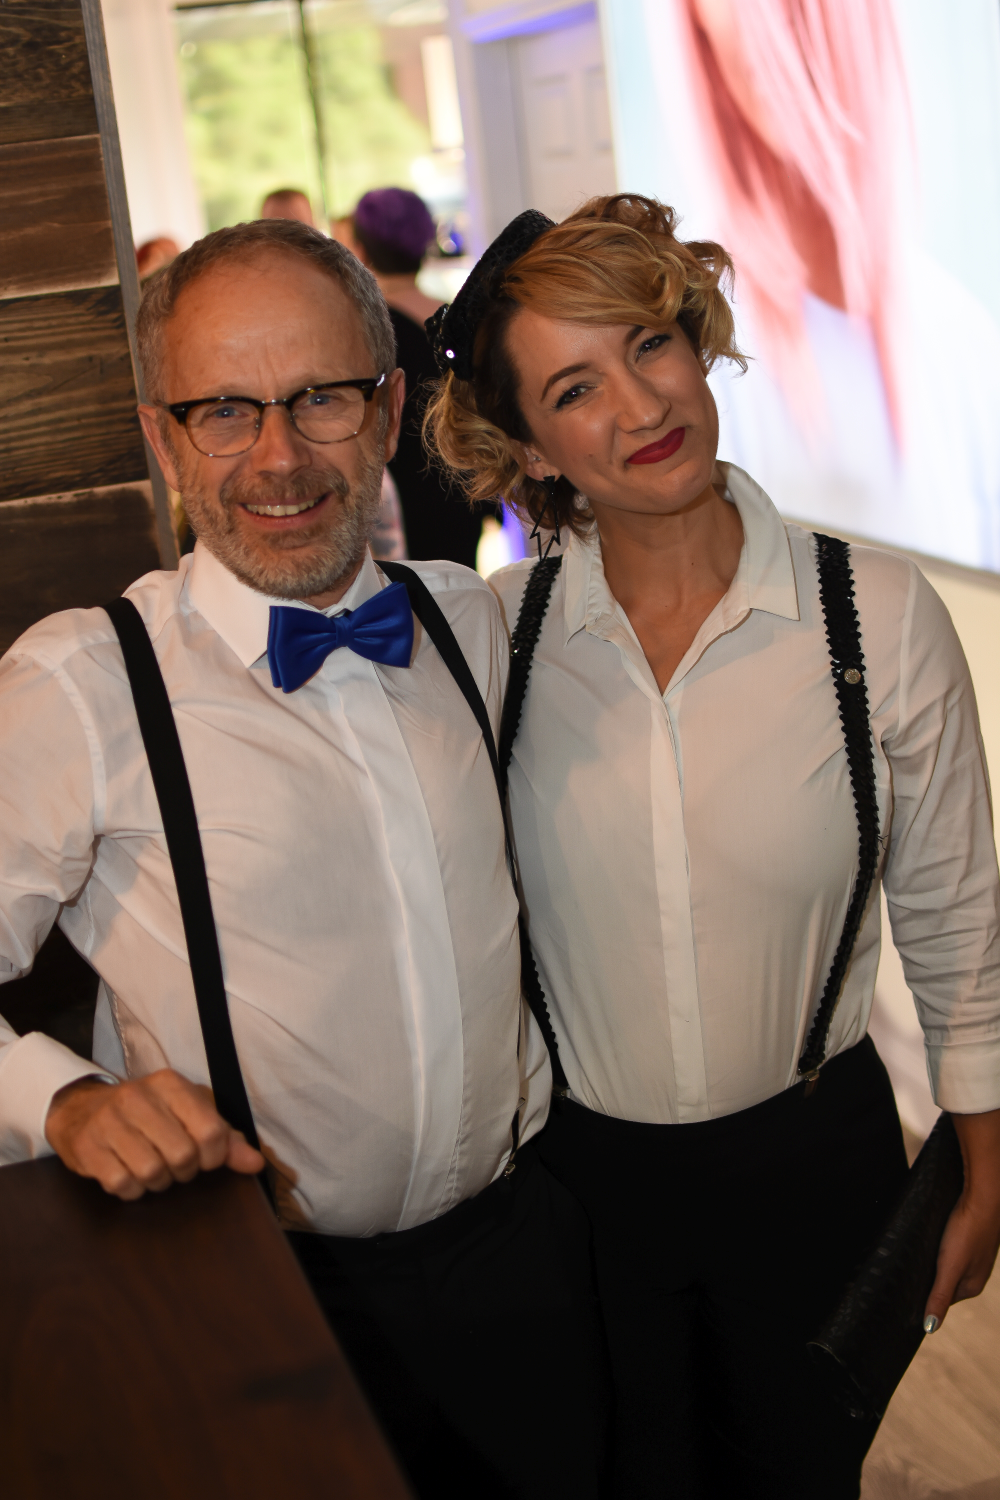 George Kuene, CEO, and Rachael Hoffman, vice president of marketing and brand development of Keune at the grand opening for the 1922 Men's Grooming Salon.